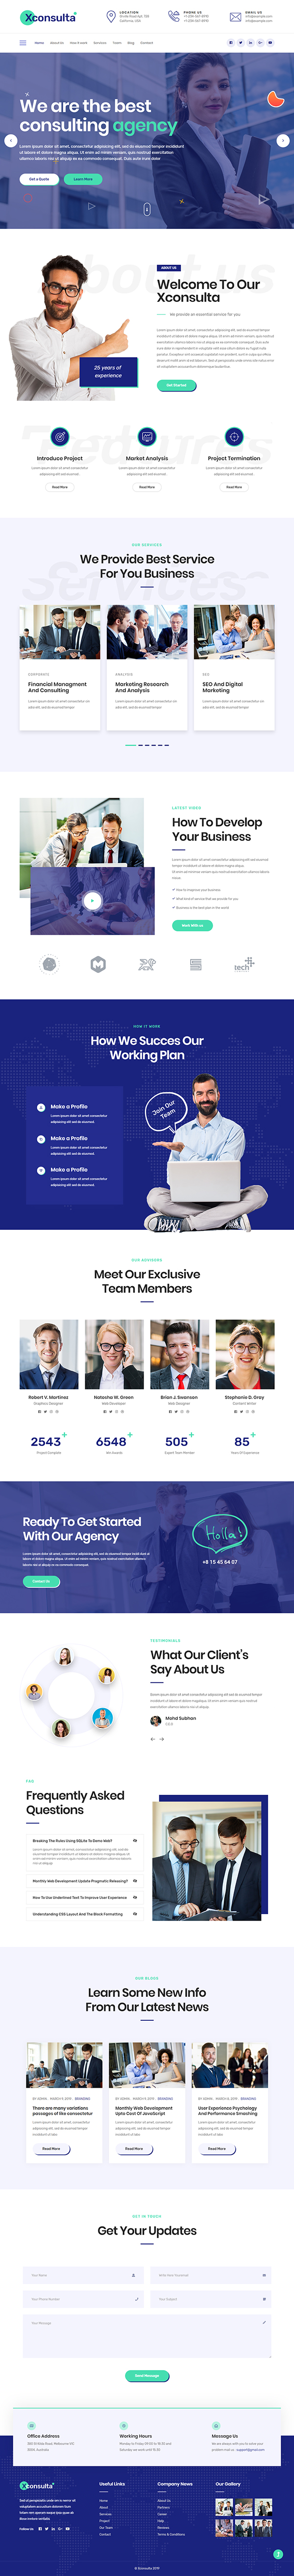 Xconsulta - WordPress theme for business & startup landing page